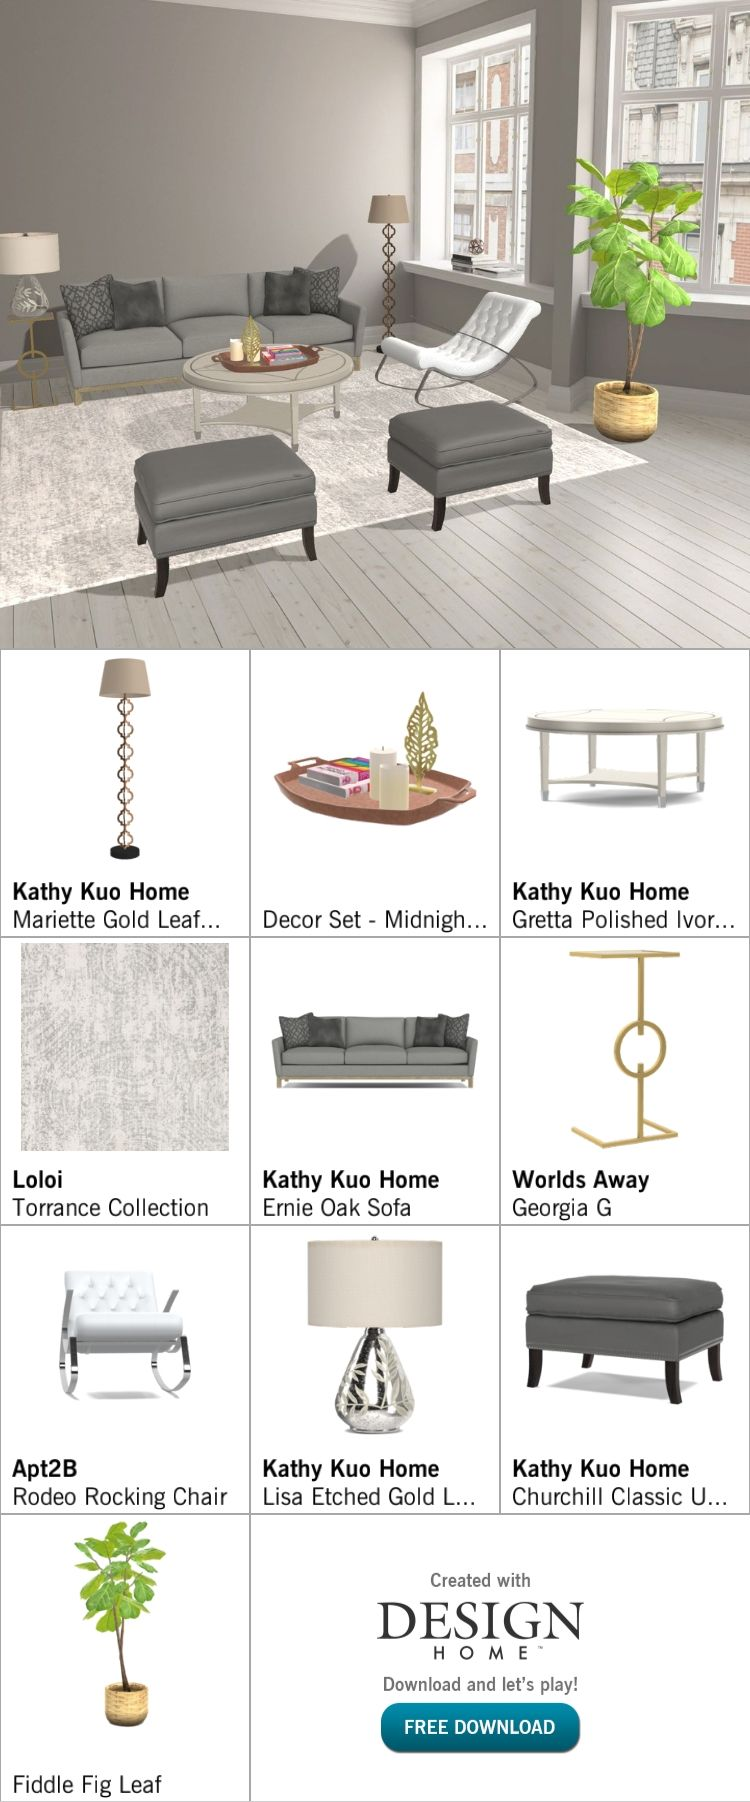 Created with Design Home! | design home game | Pinterest | Gaming ...